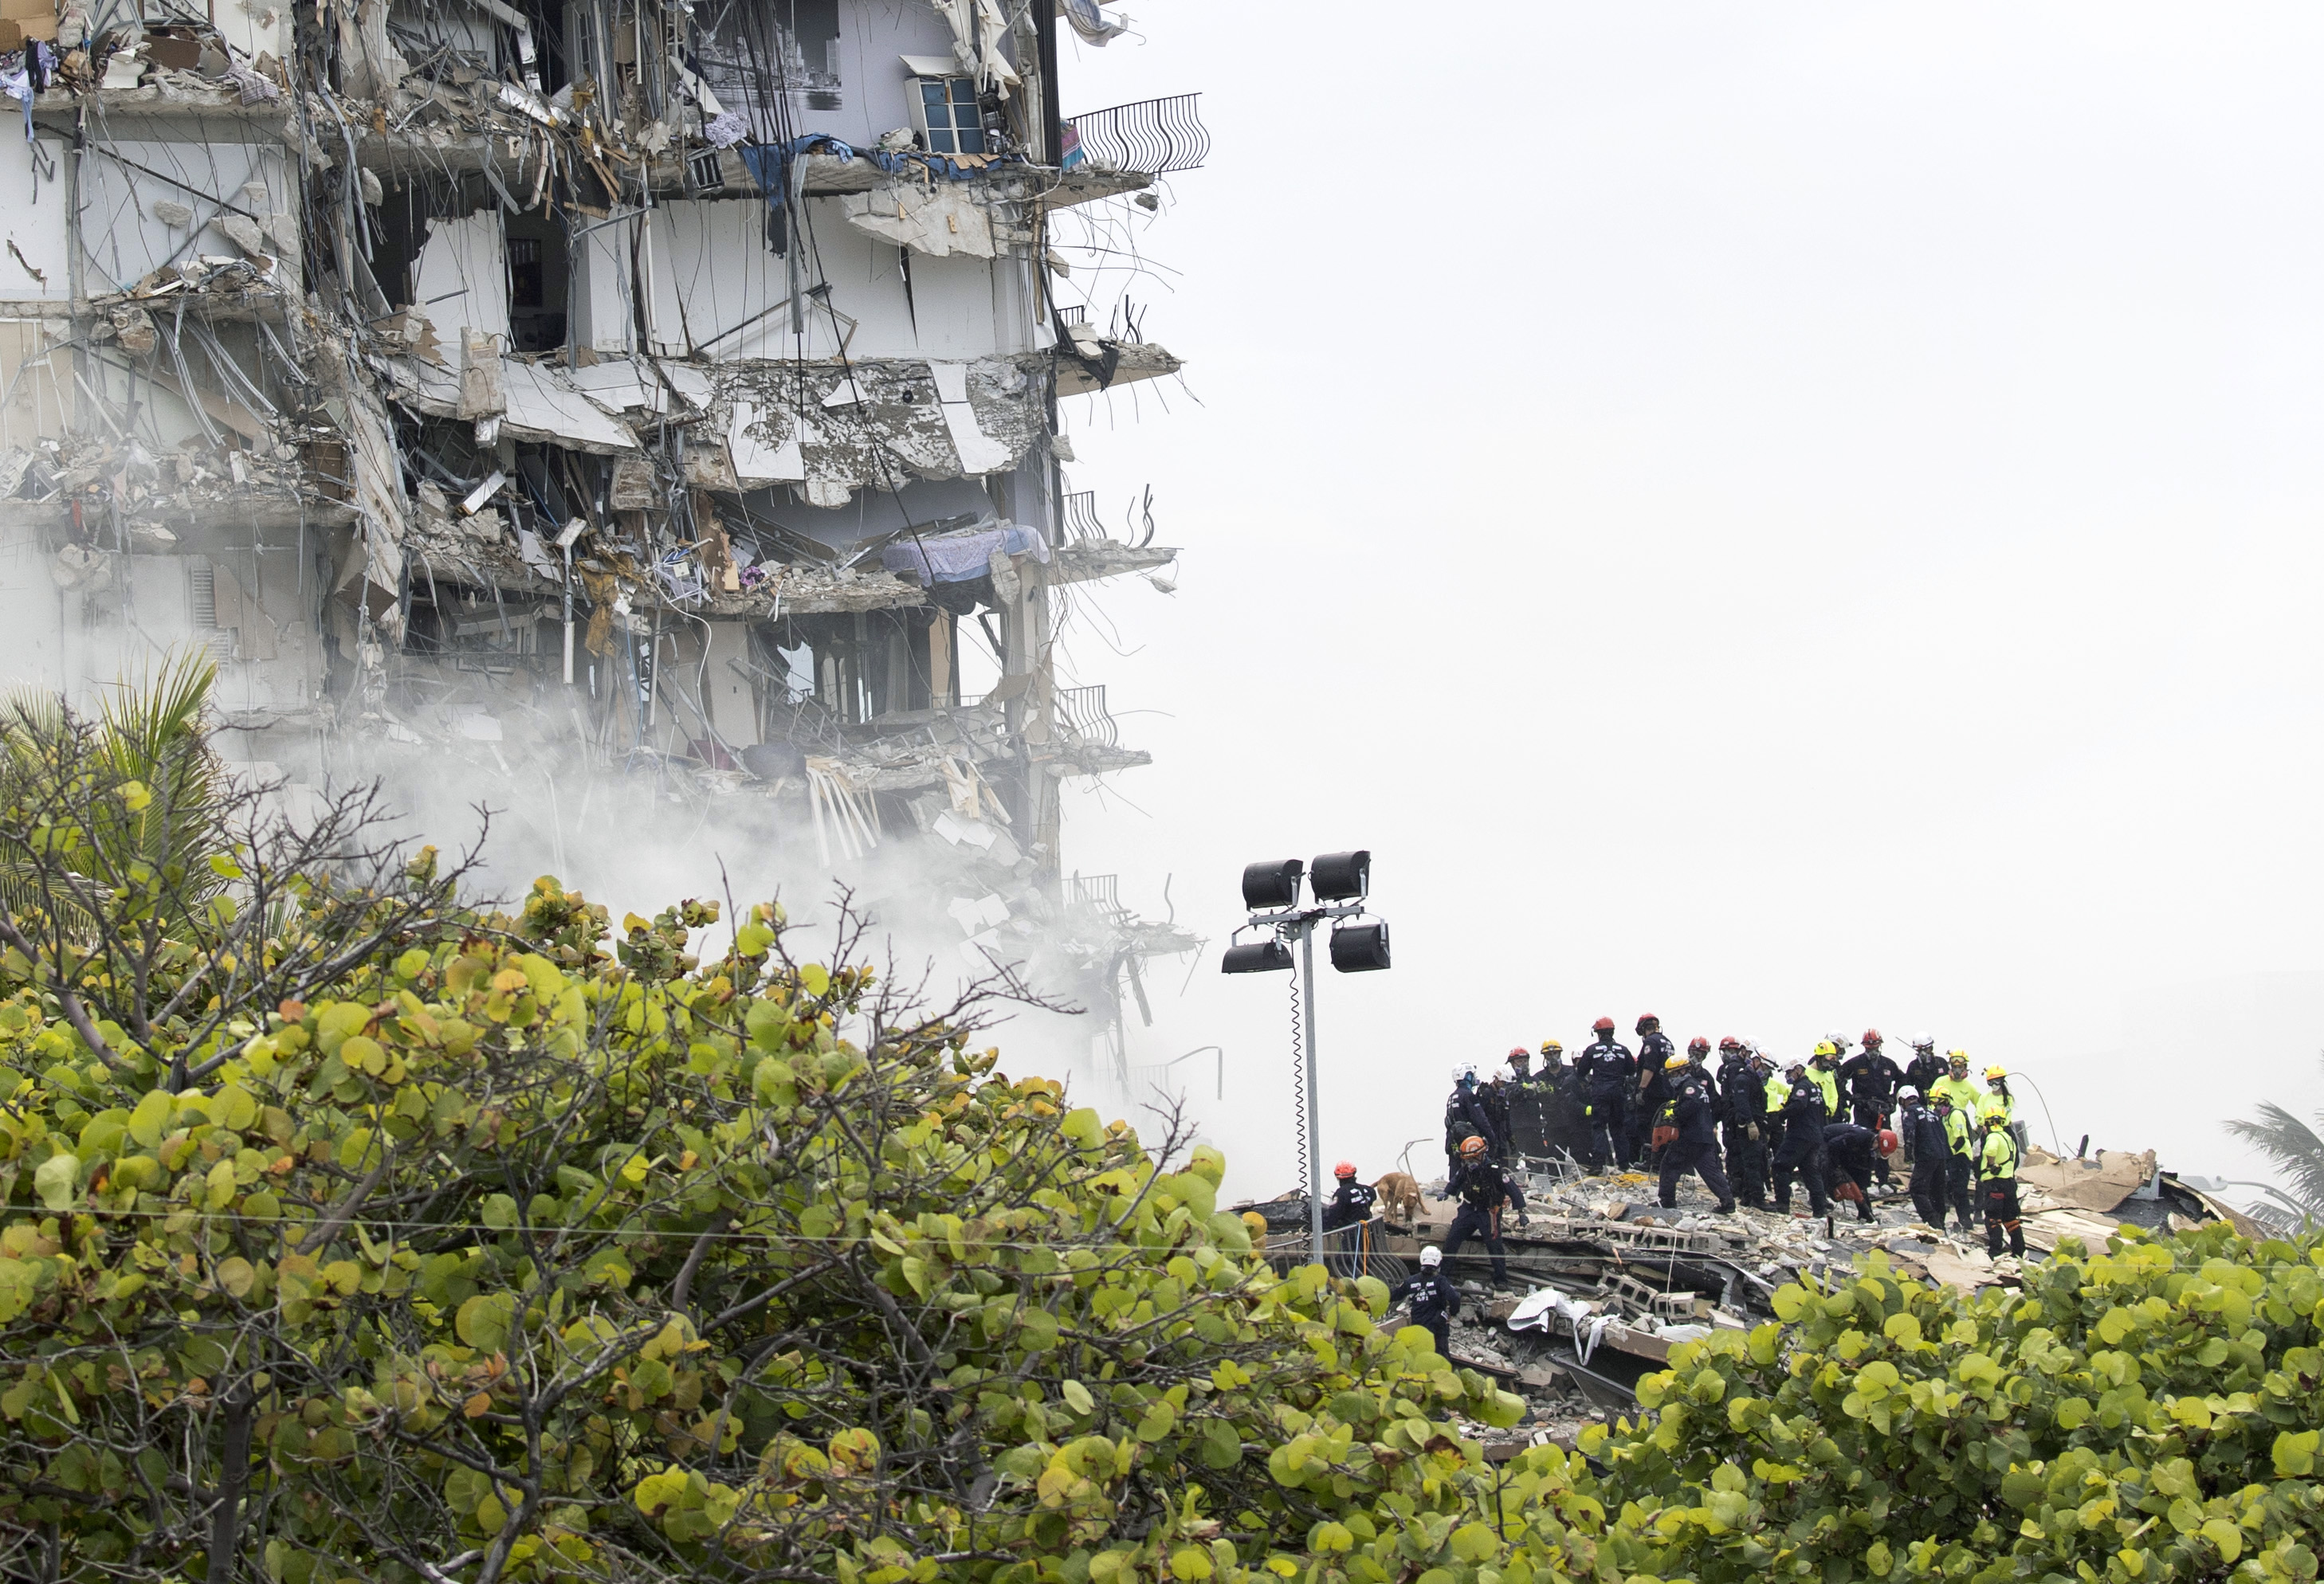 Members of the South Florida Urban Search and Rescue team look for possible survivors in the partially collapsed 12-story Champlain Towers South condo building on June 25 in Surfside, Florida.